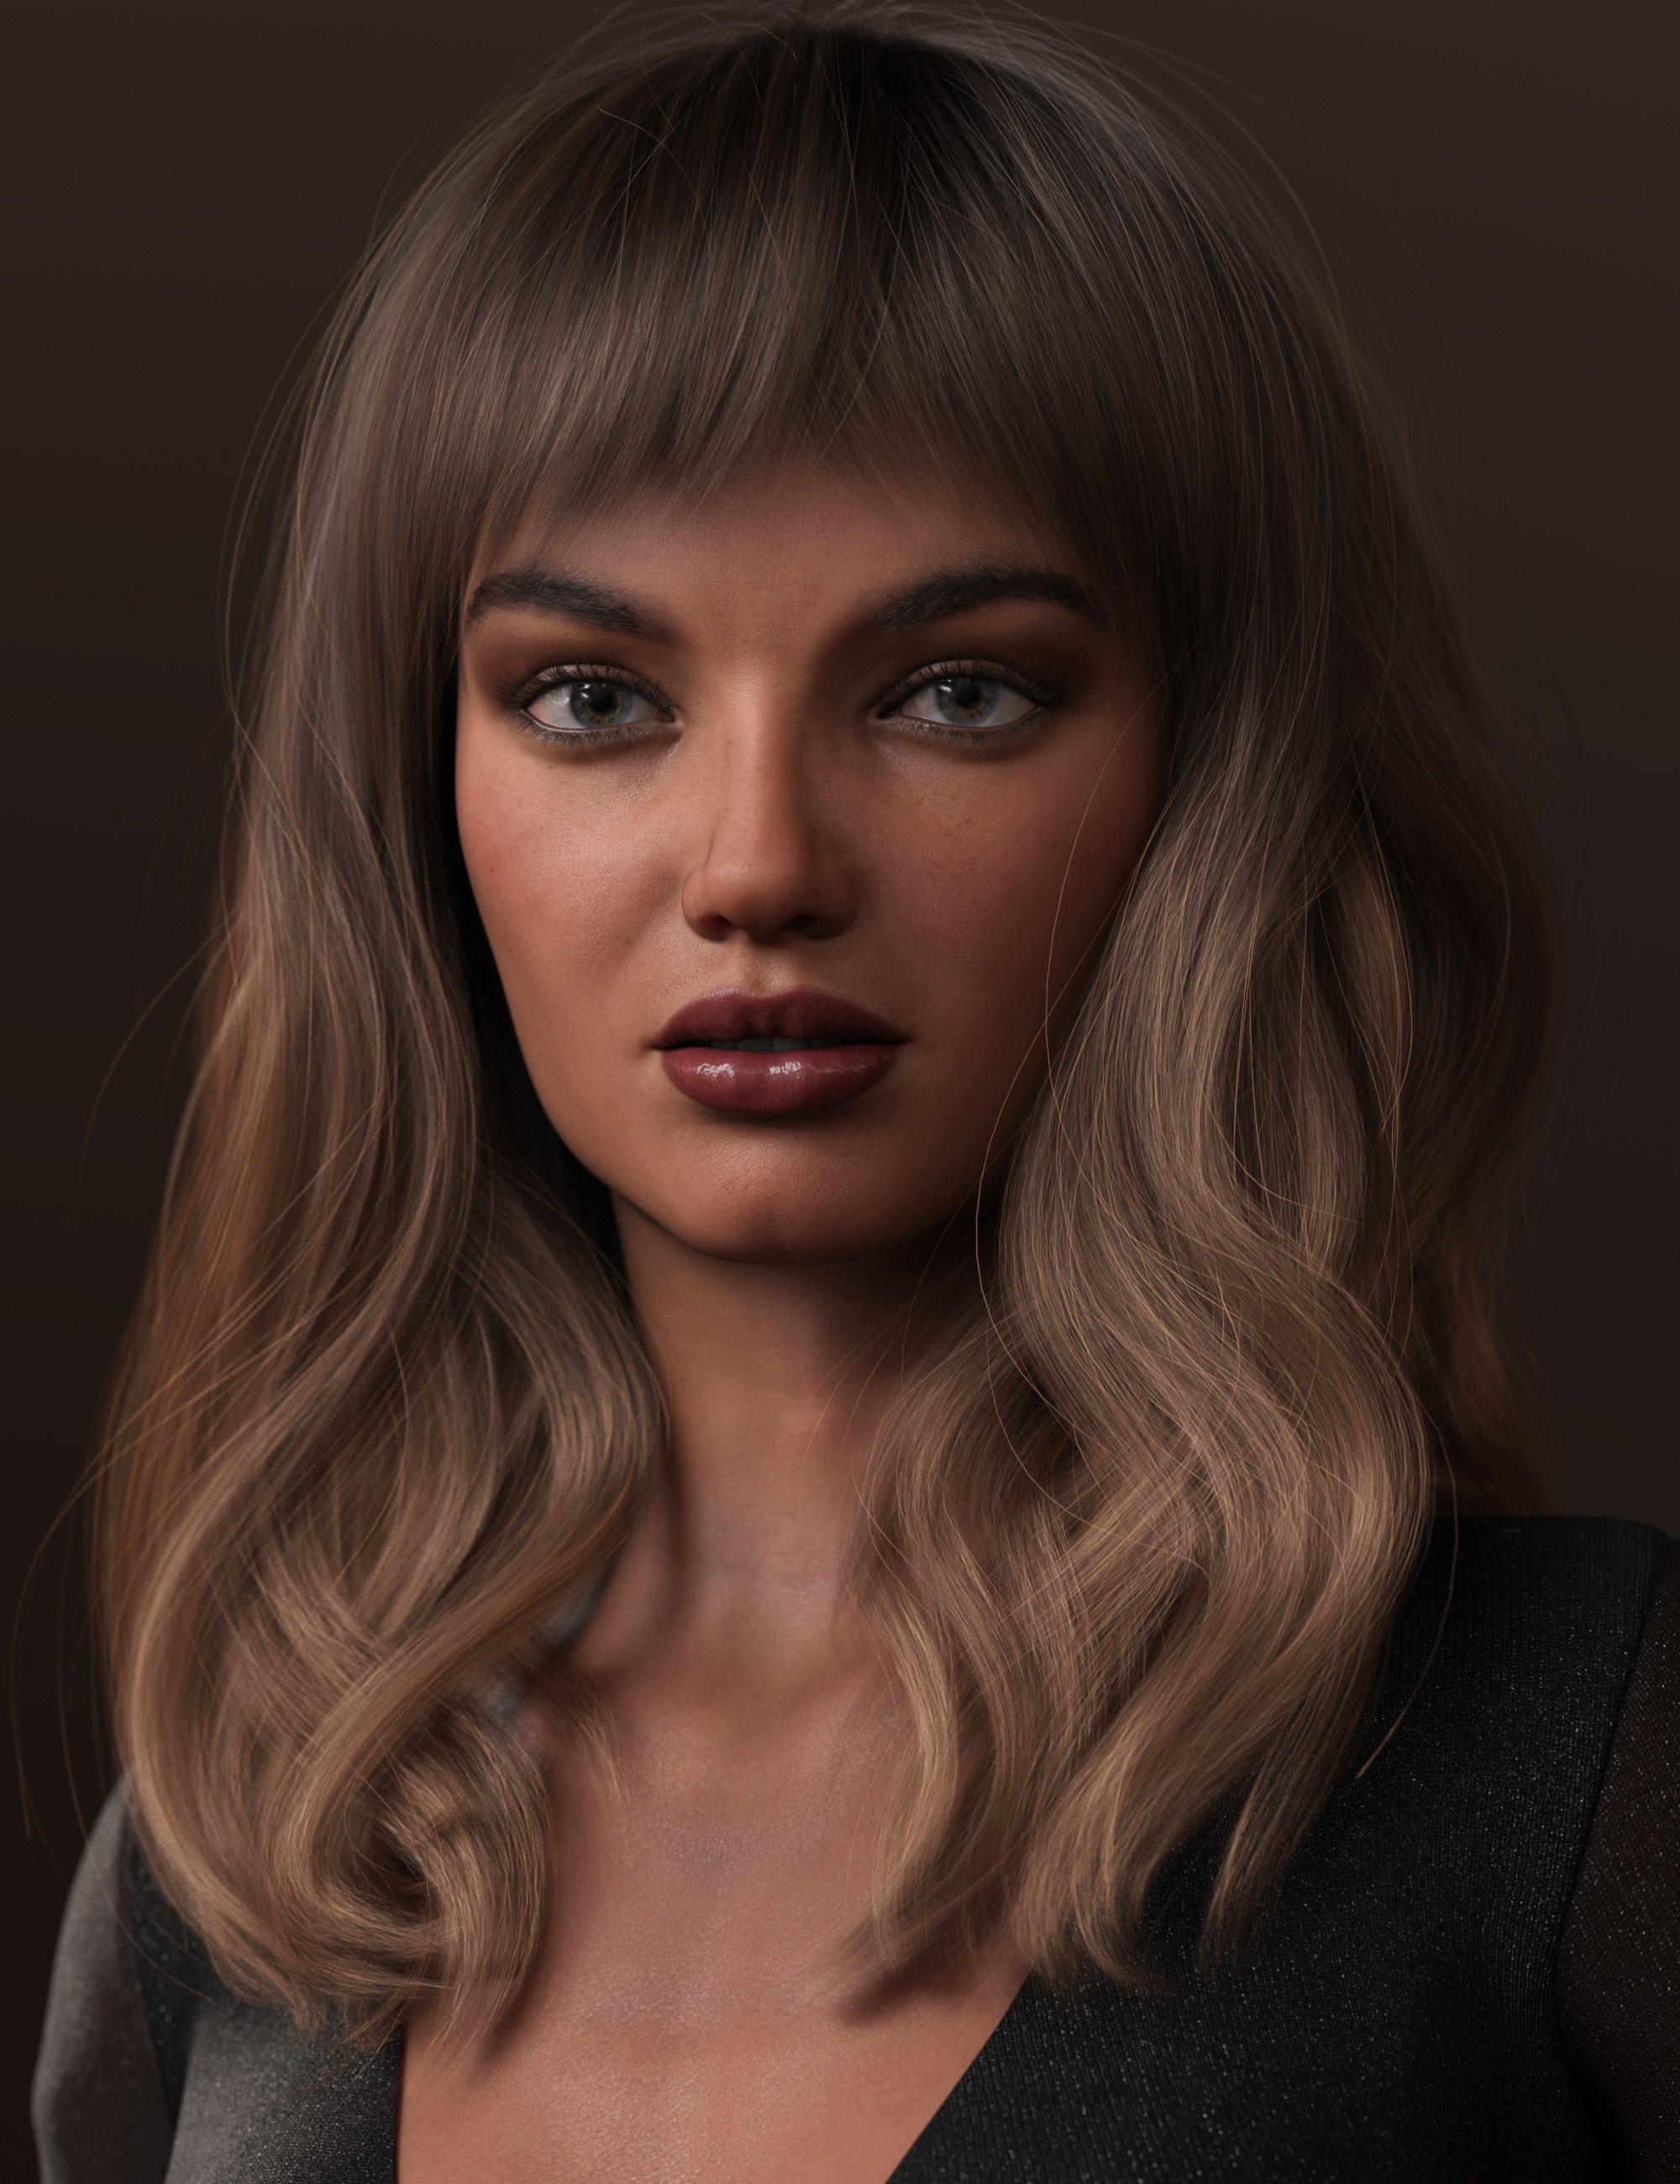 2021-02 Hair for Genesis 8 and 8.1 Females by: outoftouch, 3D Models by Daz 3D